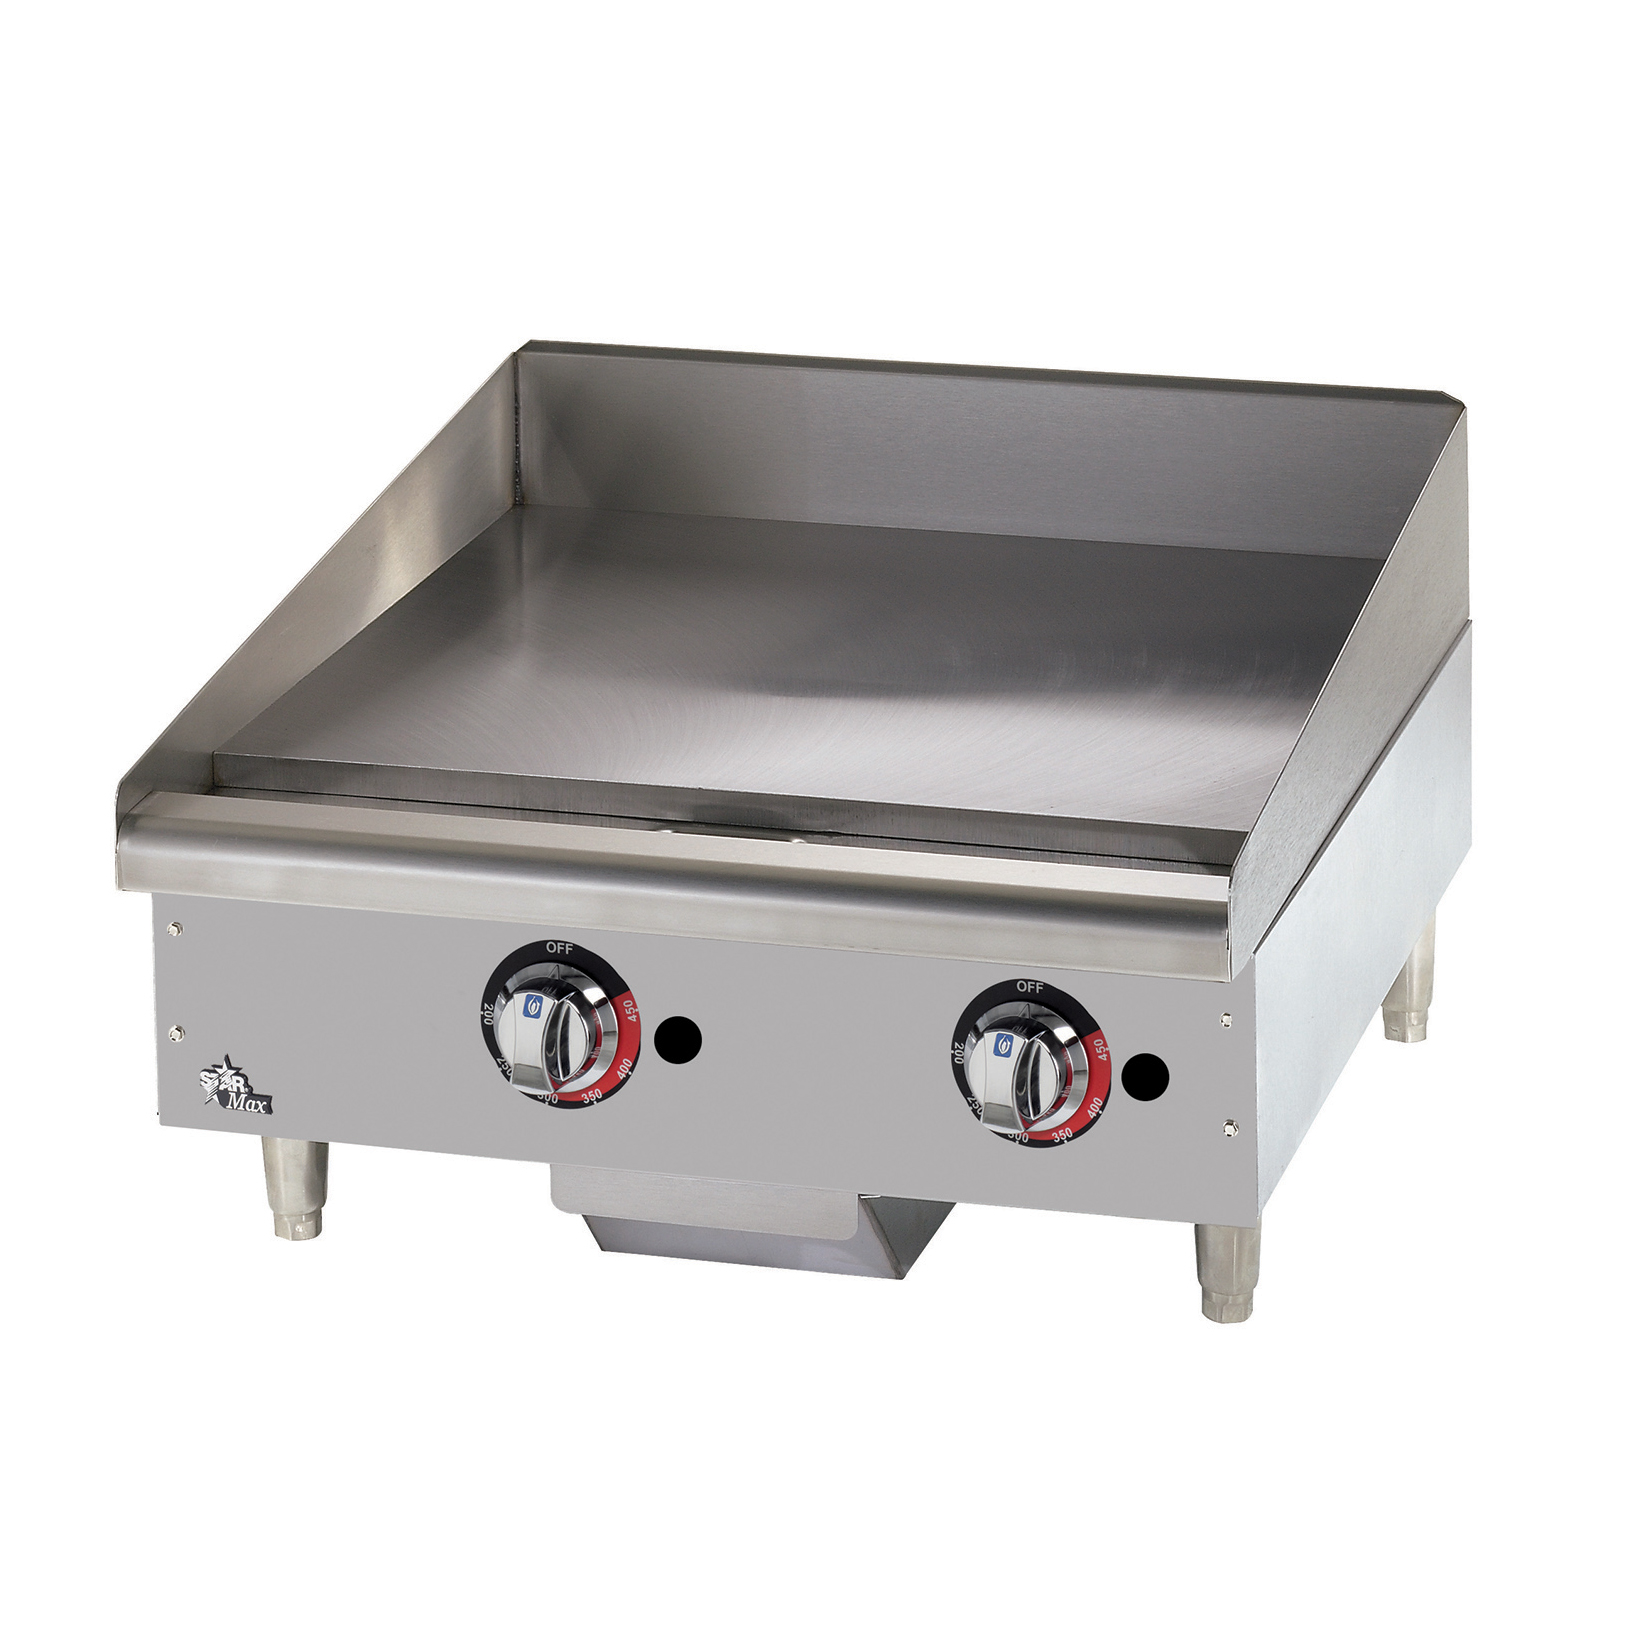 Star 624MF griddle, gas, countertop